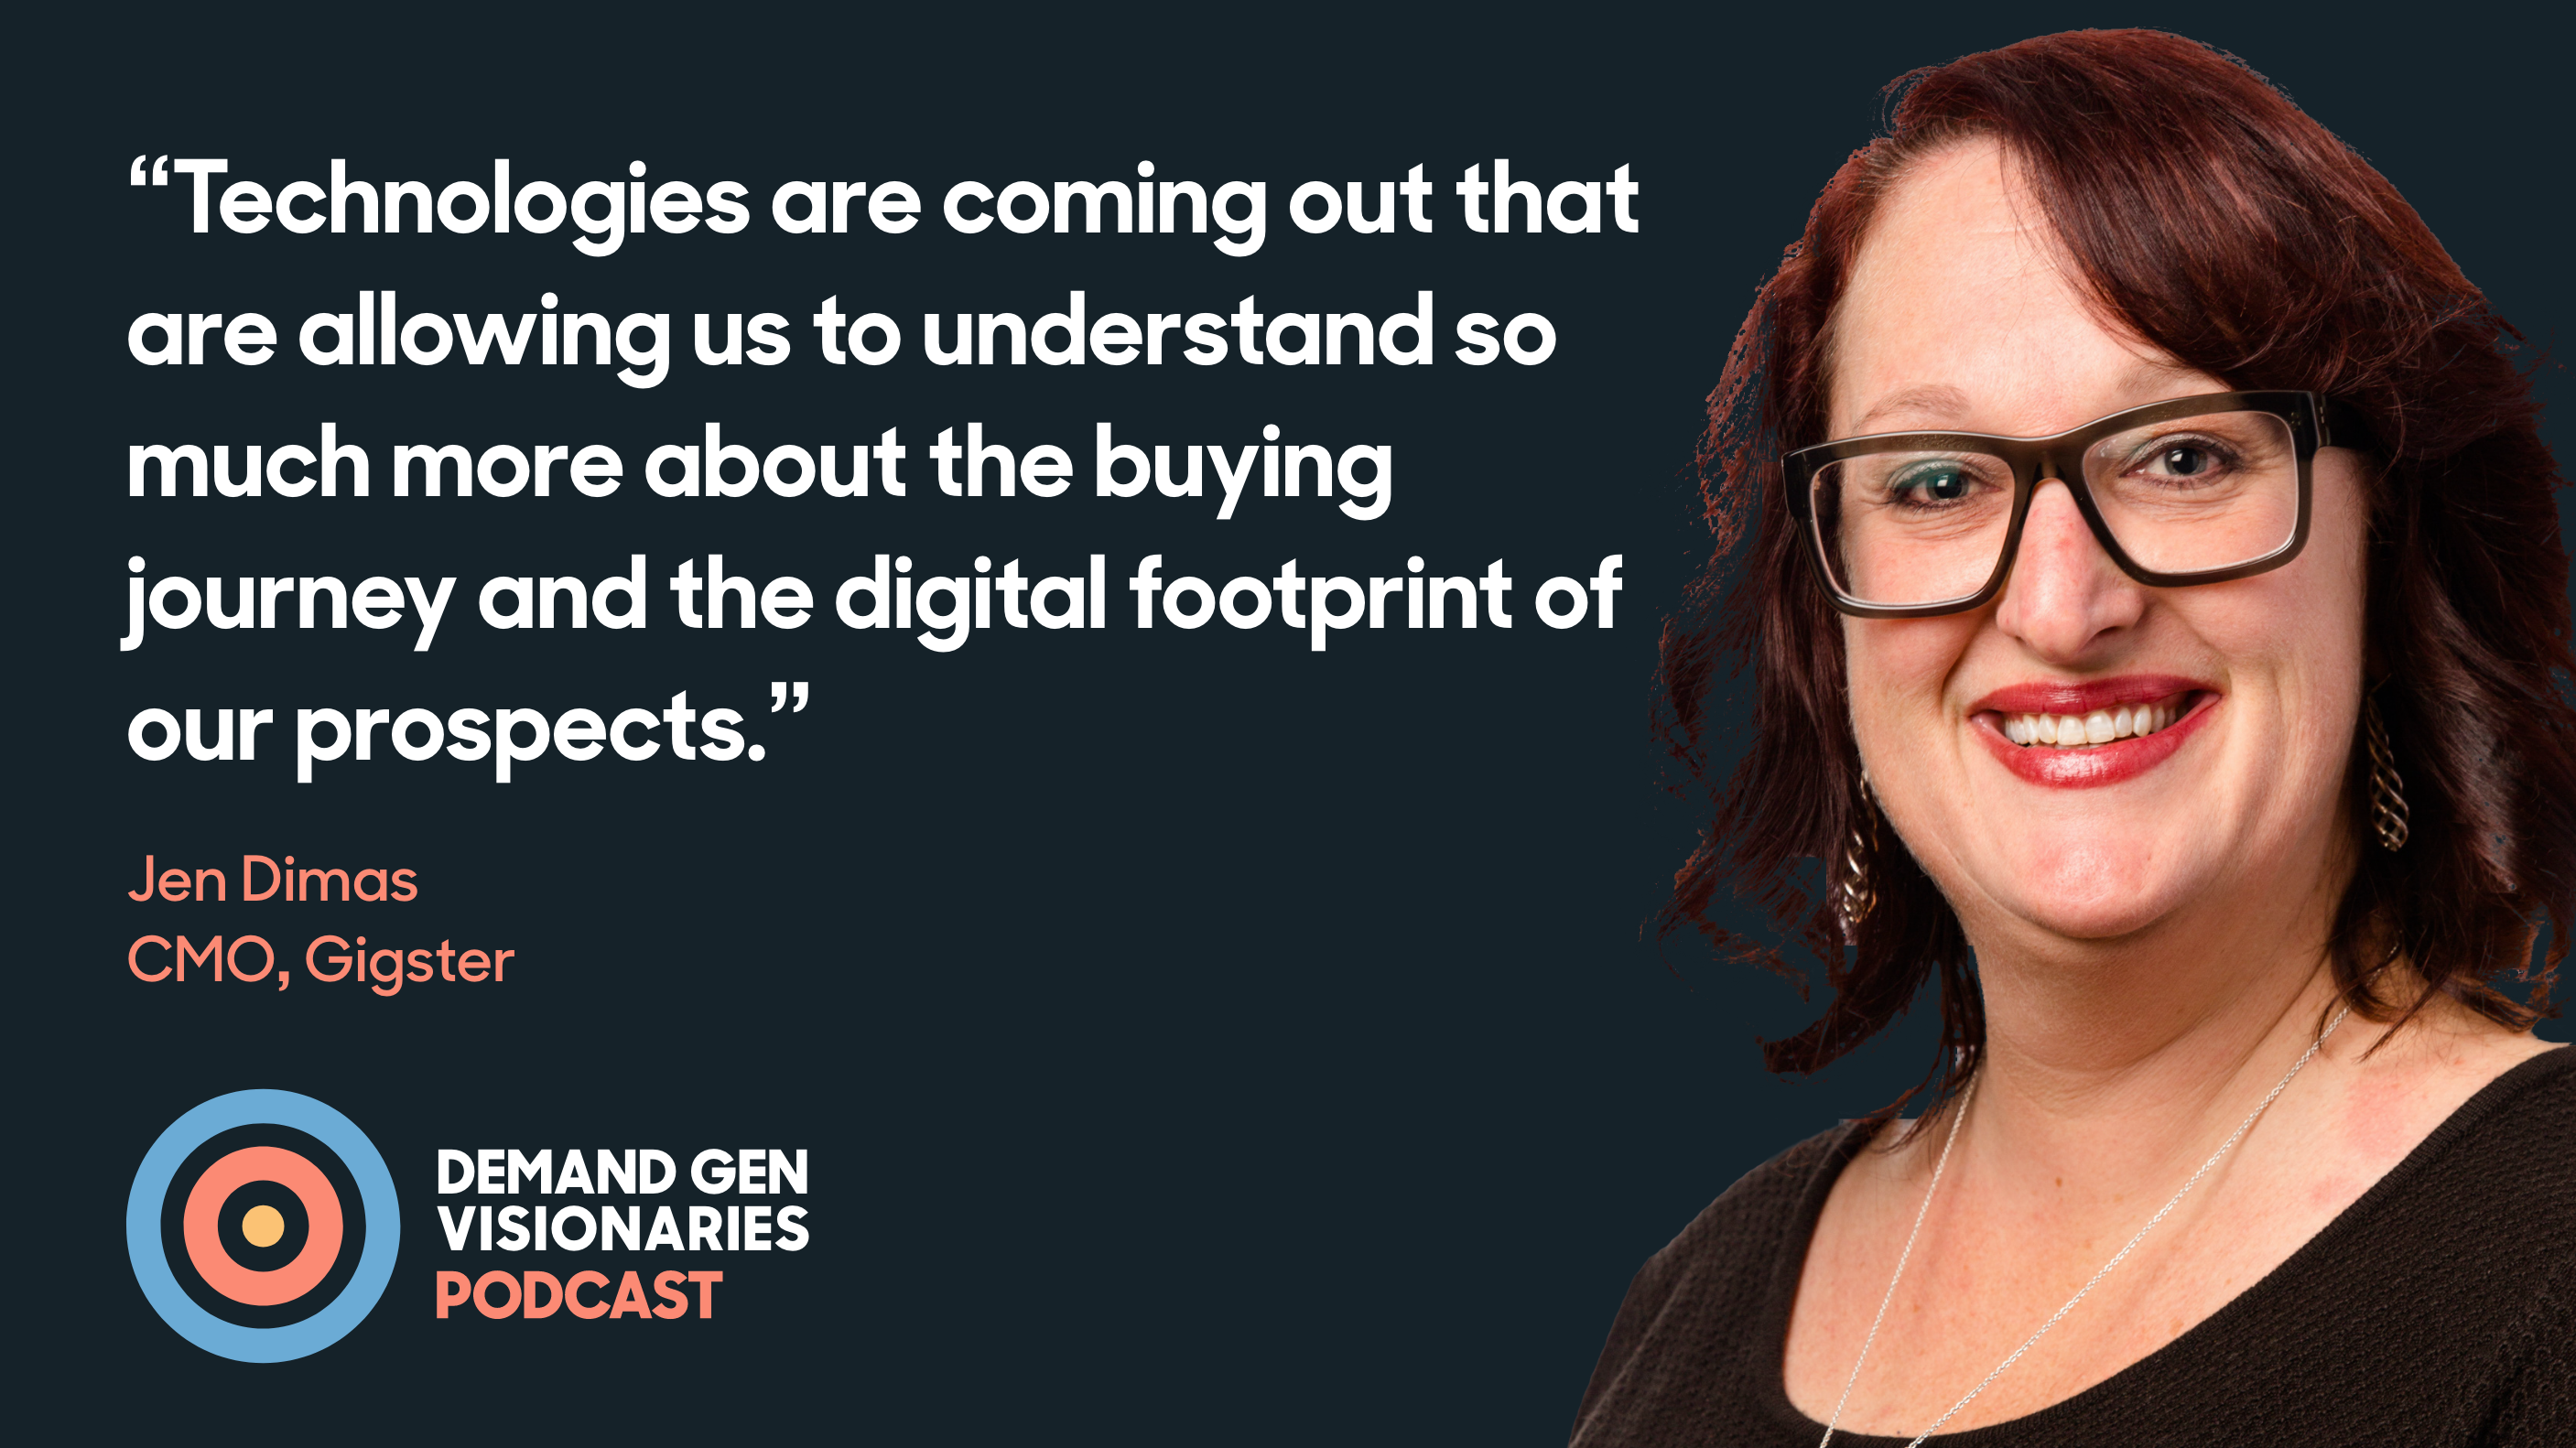 Jen Dimas, CMO of Gigster, joins the Demand Gen Visionaries podcast